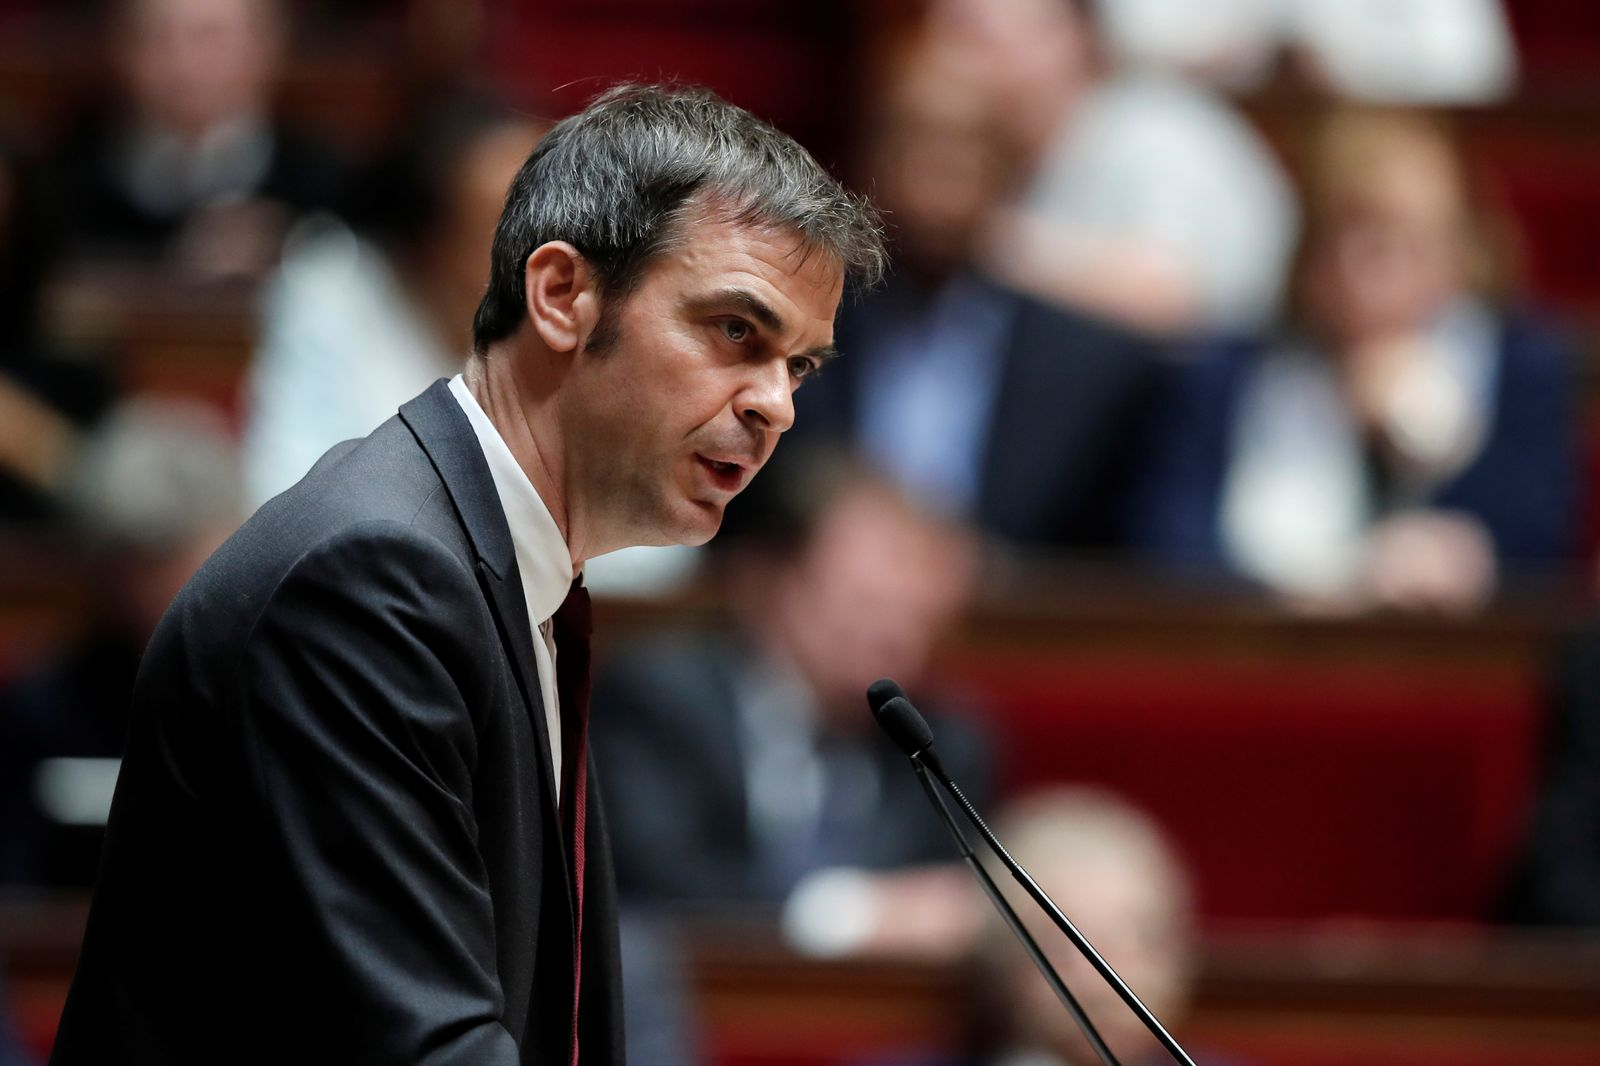 Opening debate on the French government's pensions reform bill at the National Assembly in Paris